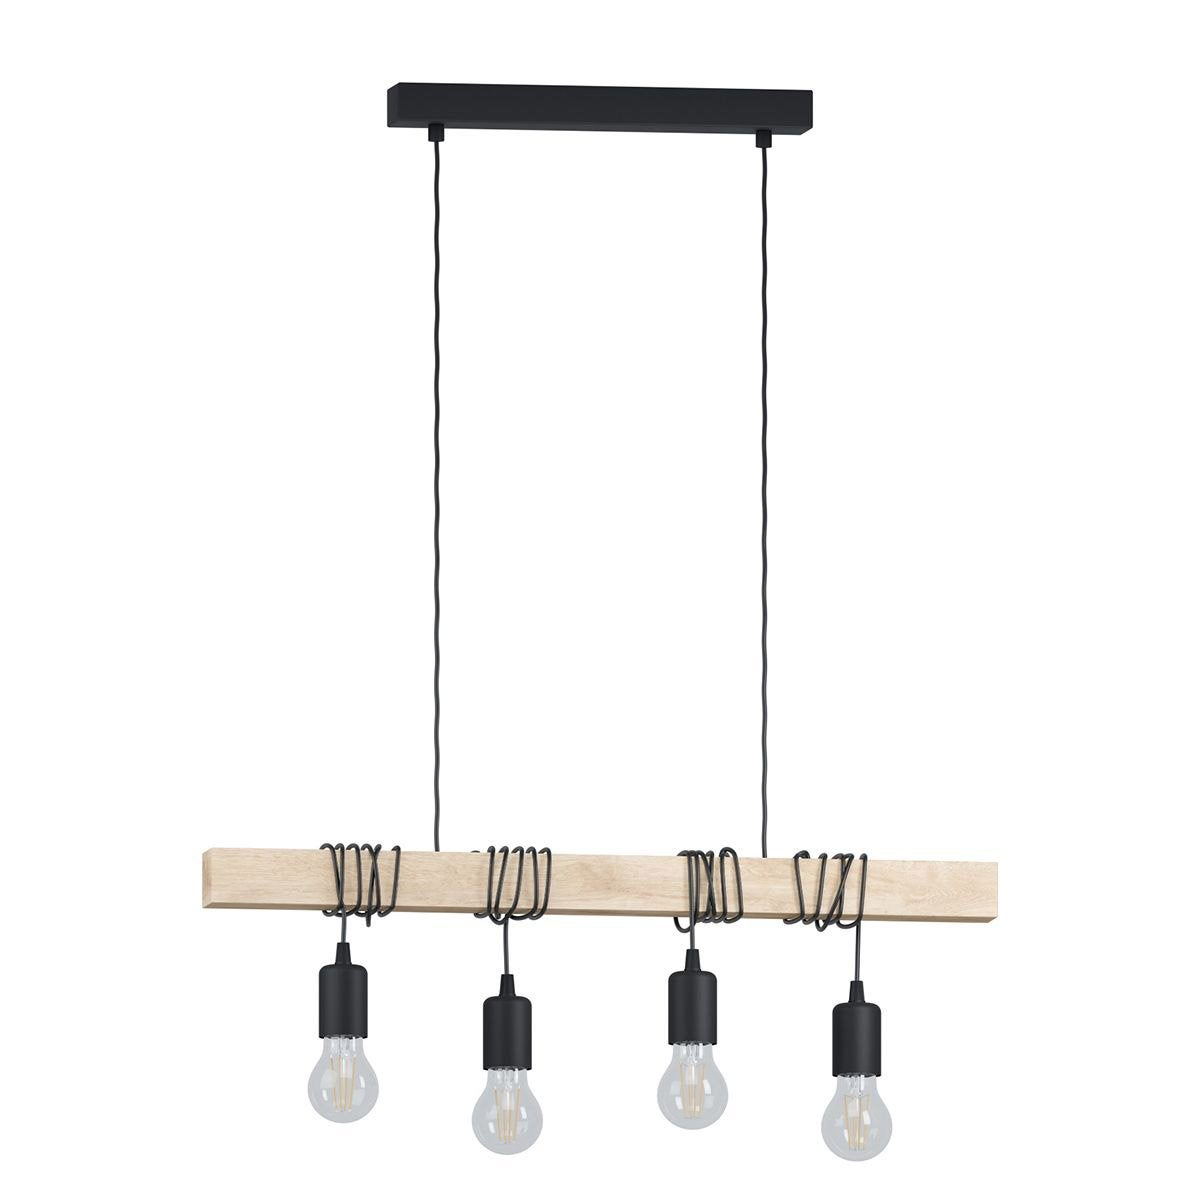 Suspension e27 design townshend bois noir 4 x 60 w eglo for Suspension design pour salon